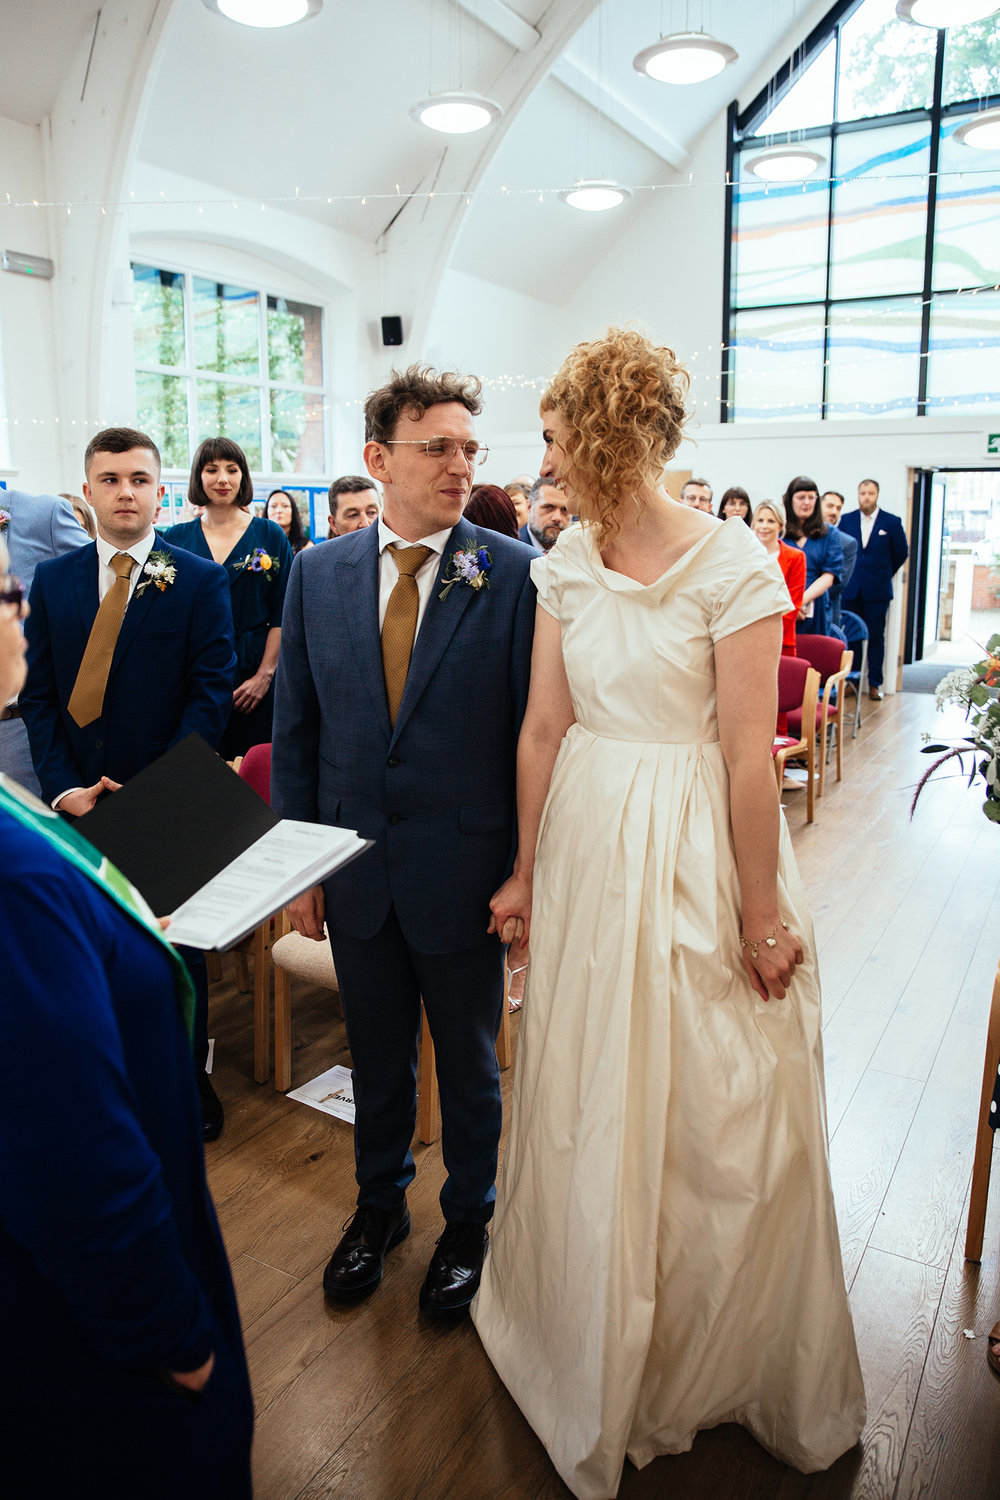 Manchester Wes Anderson Village Hall Wedding 048.jpg